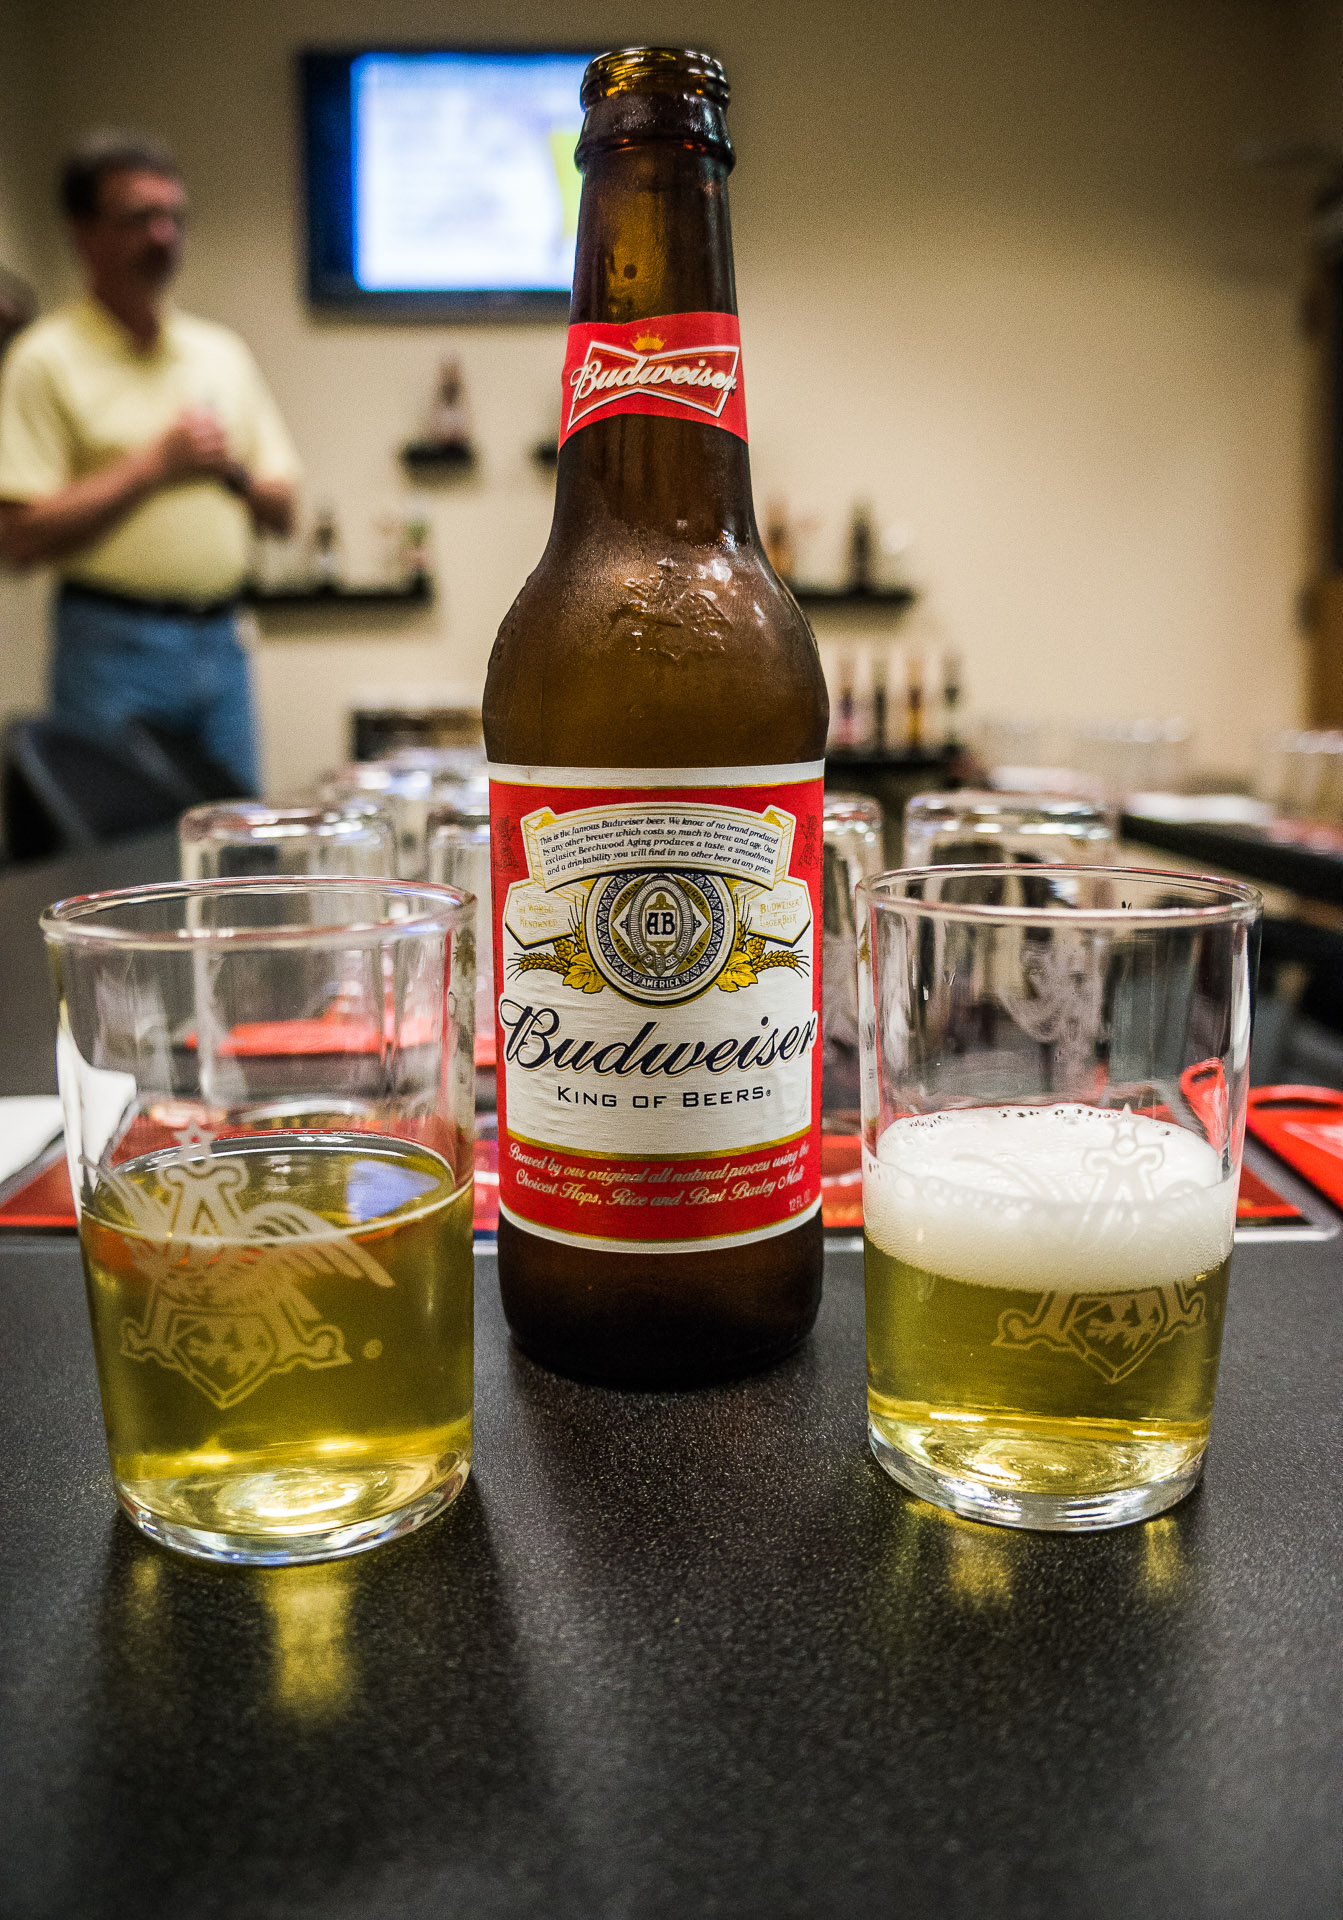 Budweiser Beer School in Jacksonville, FL Review and Tour